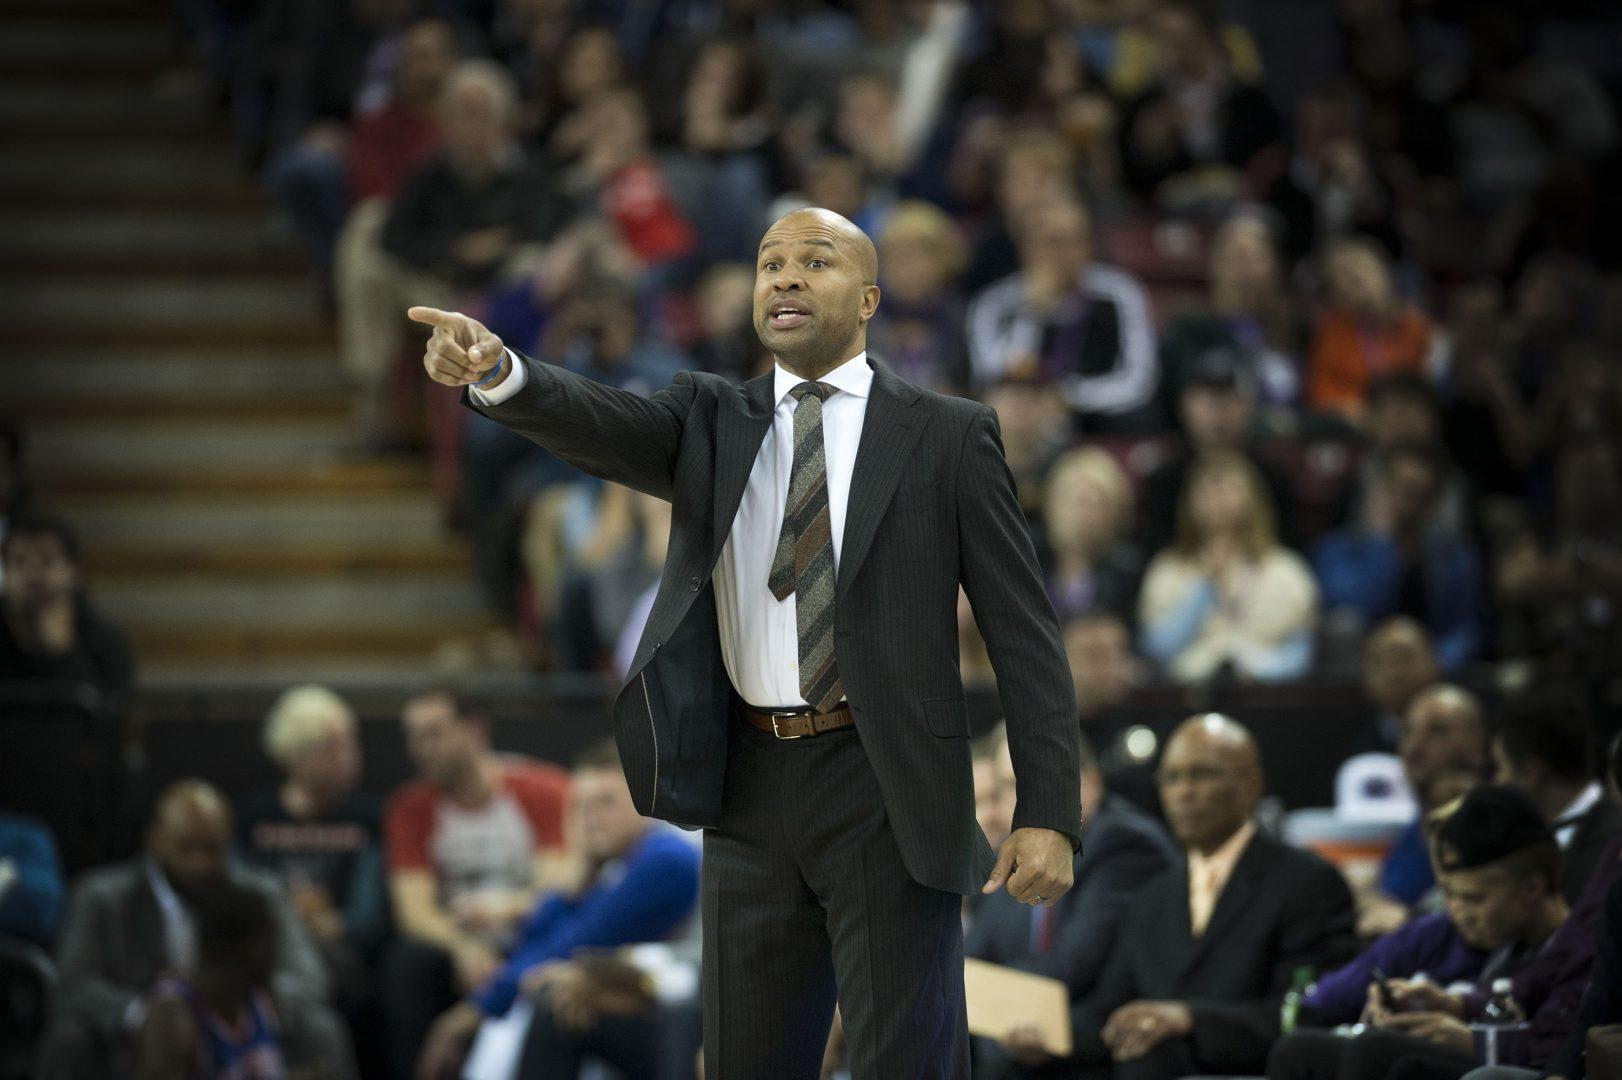 New York Knicks head coach Derek Fisher calls a play during action against the Sacramento Kings at Sleep Train Arena in Sacramento, Calif., on Saturday, Dec. 27, 2014. (Hector Amezcua/Sacramento Bee/TNS)